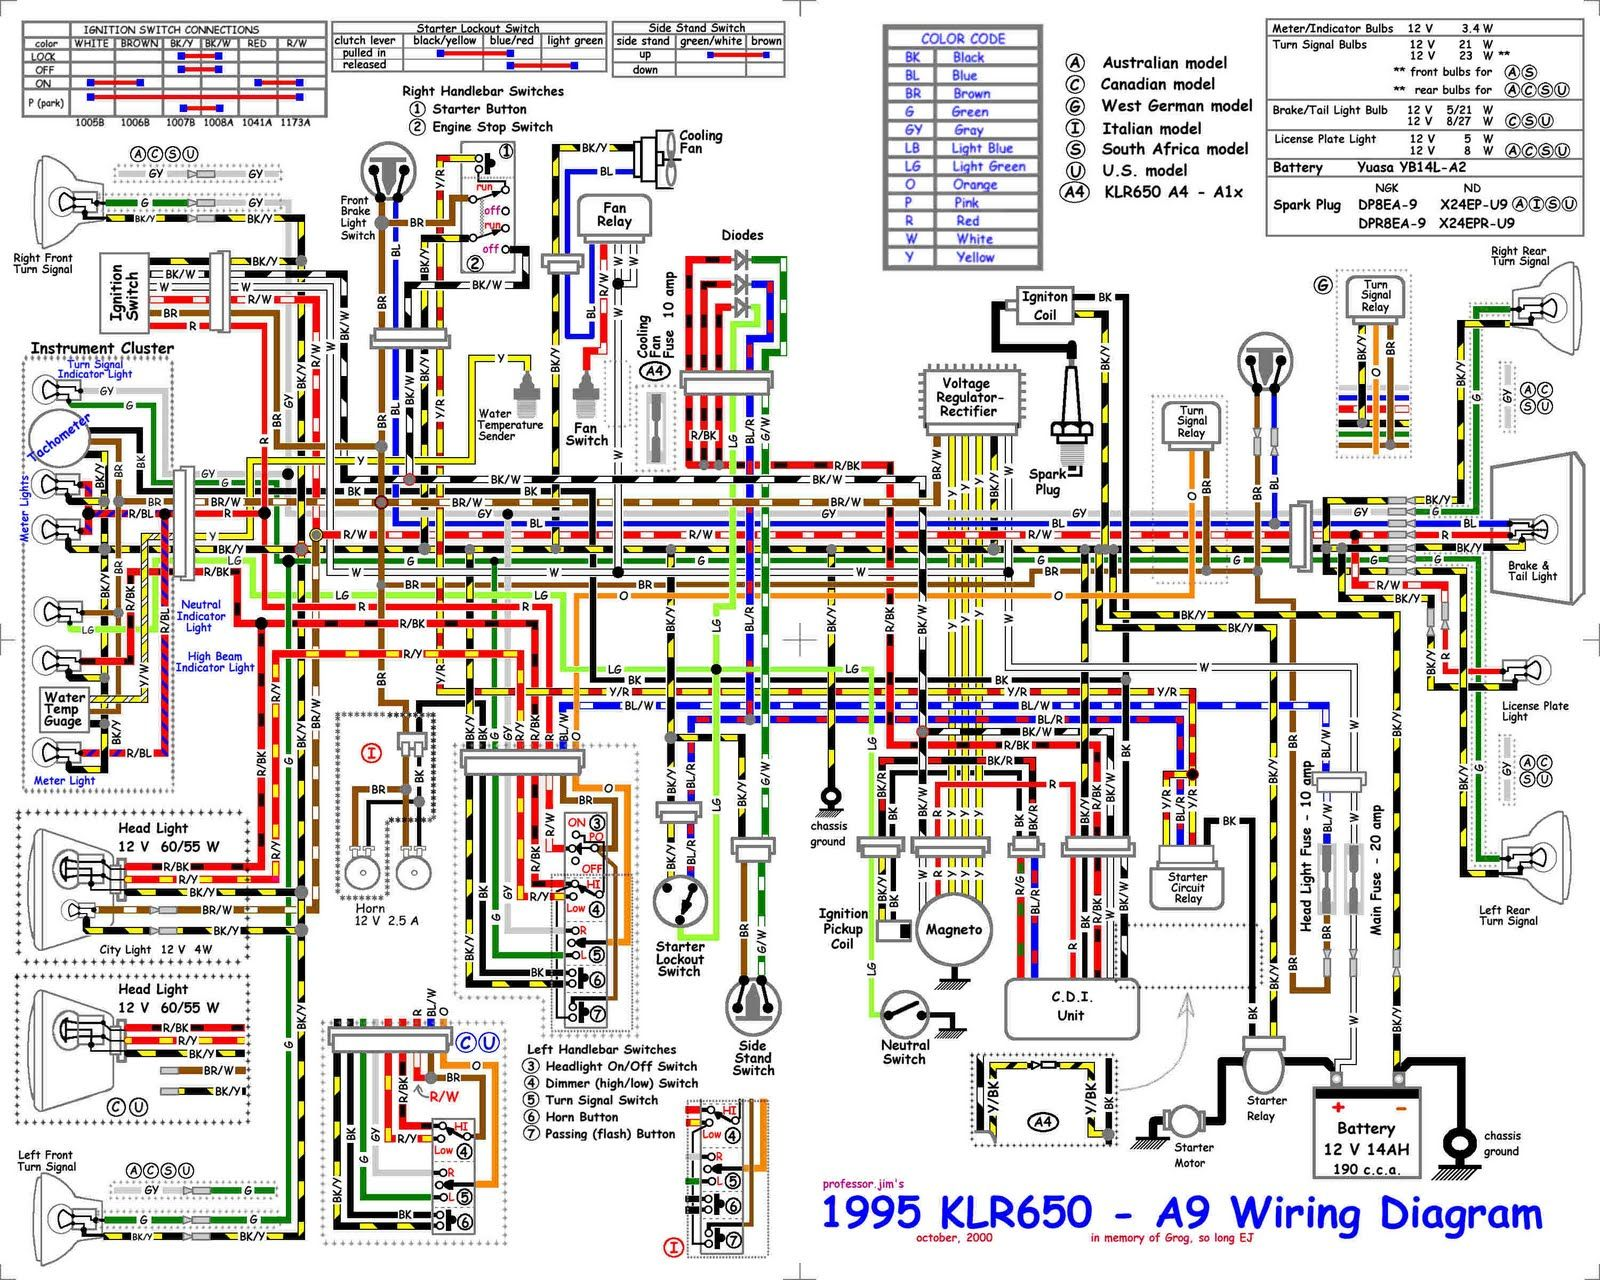 auto wiring - Google Search | Electrical wiring diagram, Electrical diagram,  Klr 650Pinterest